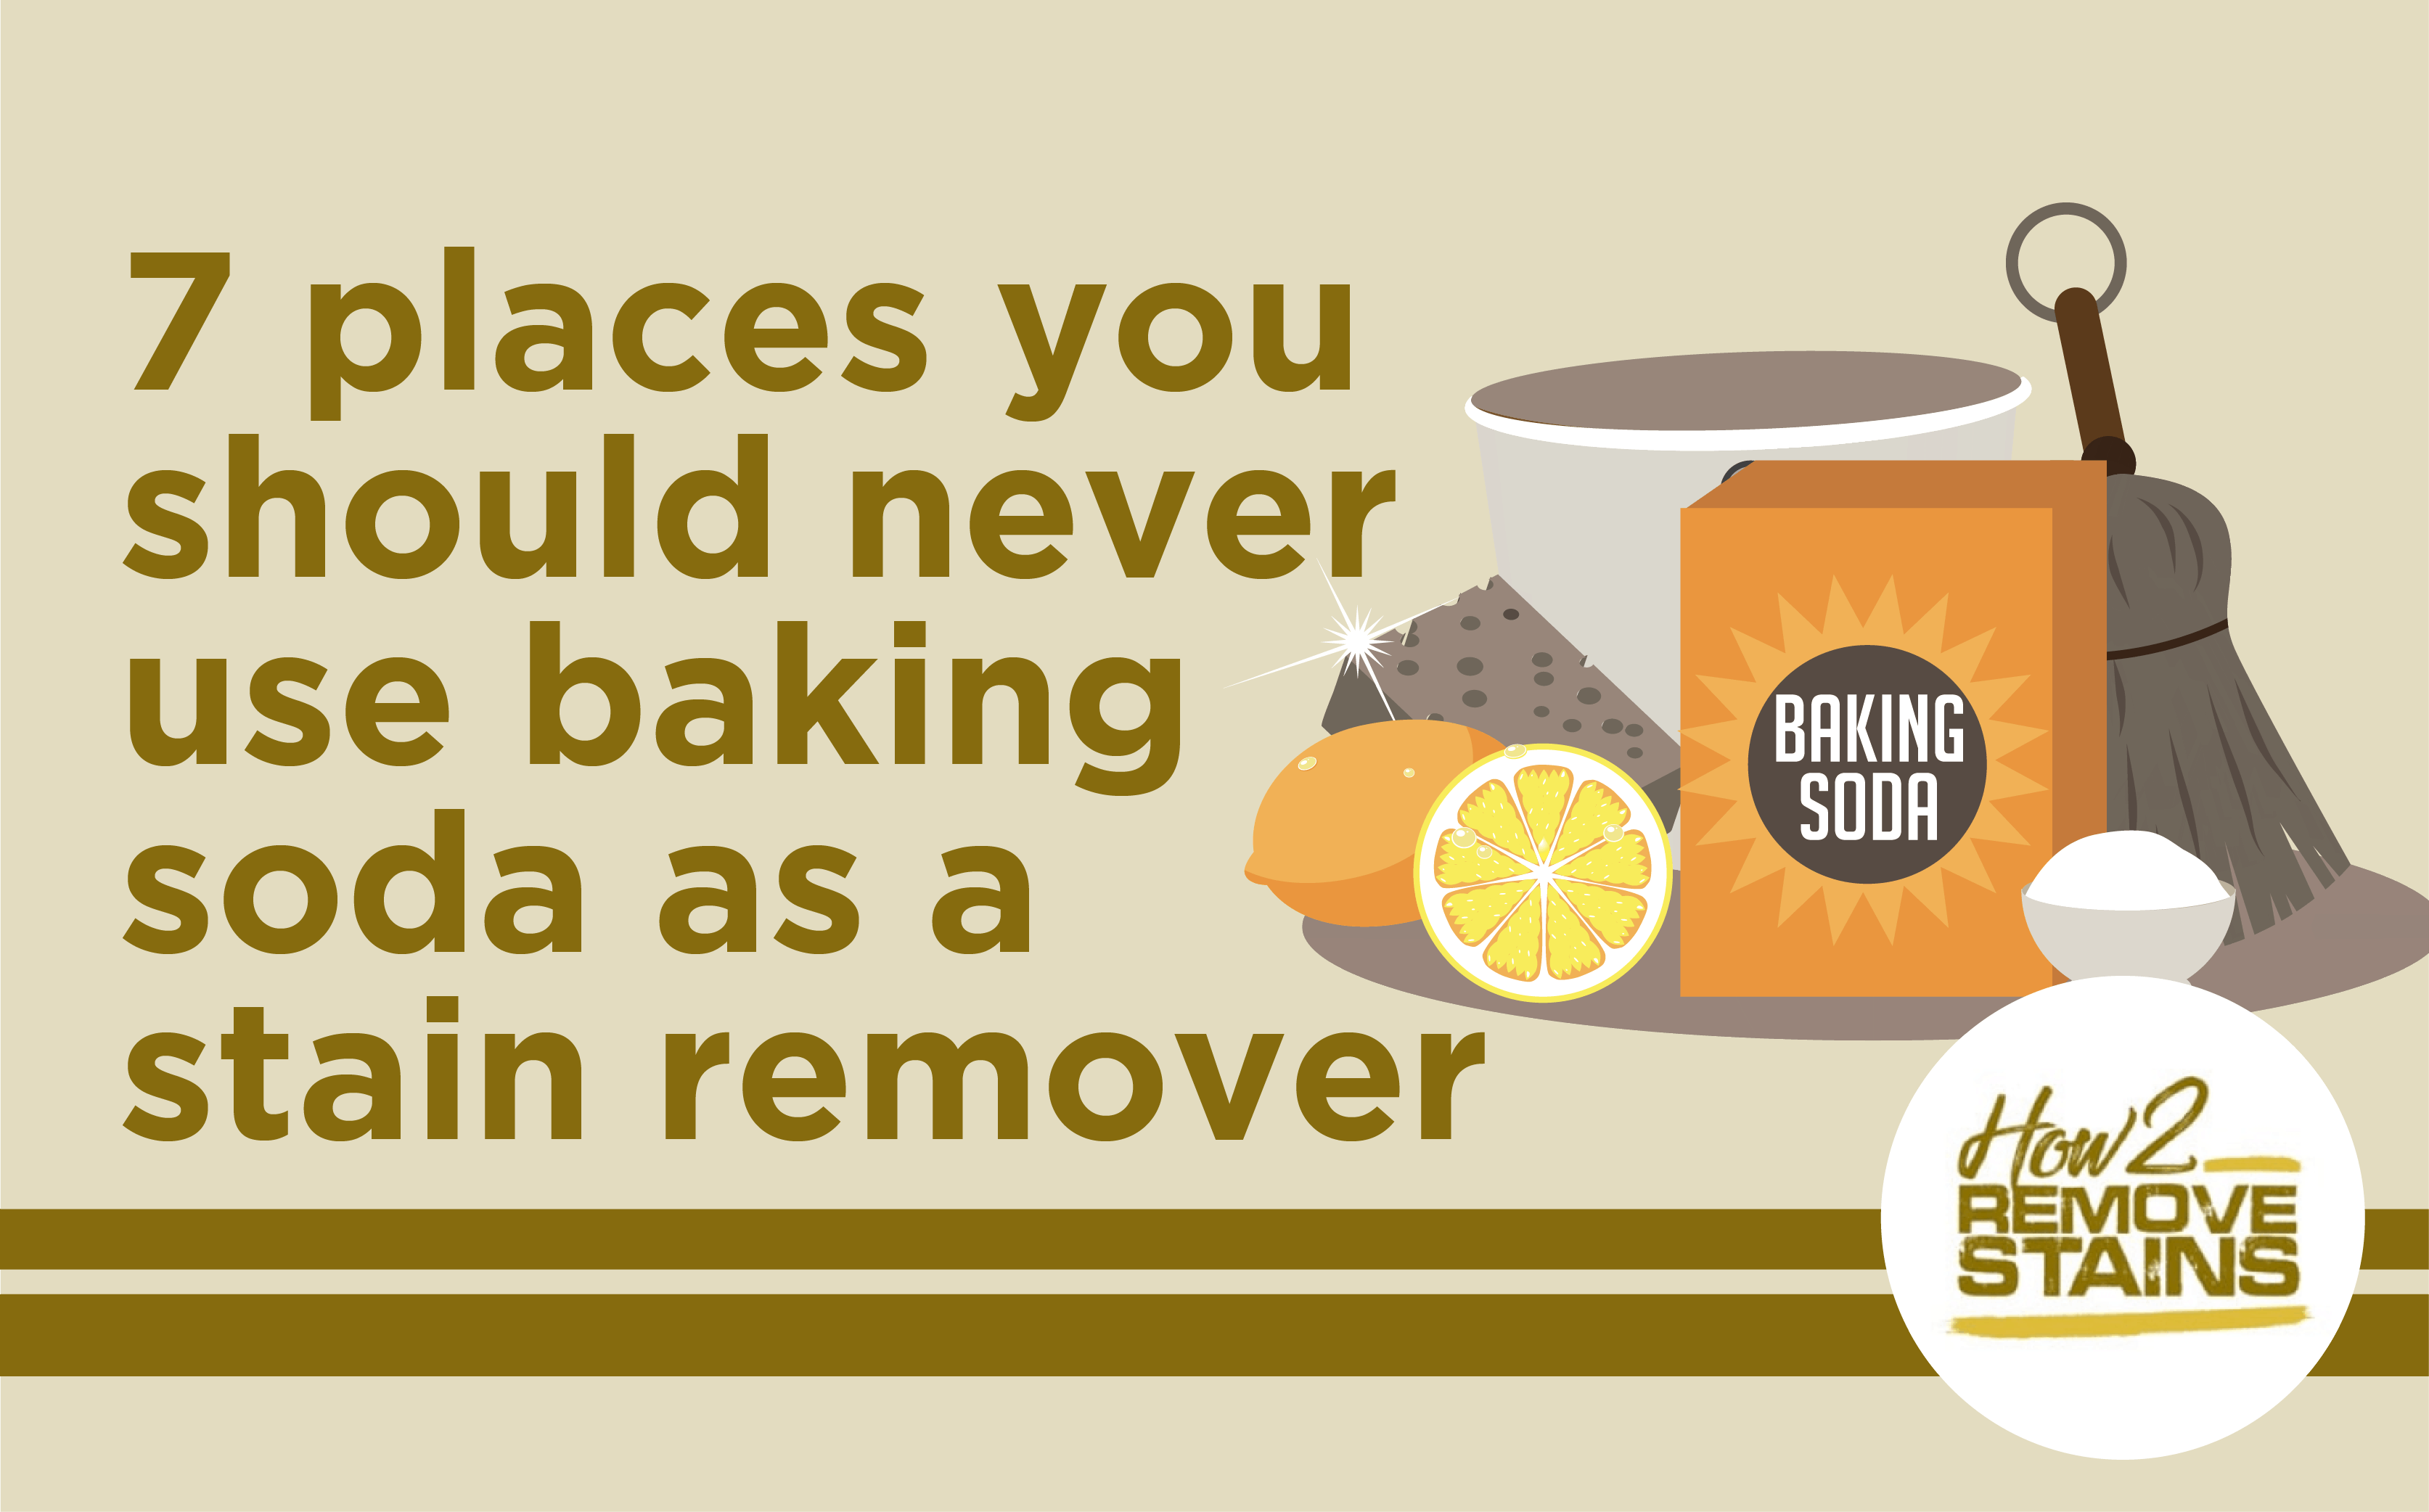 Baking Soda as stain remover